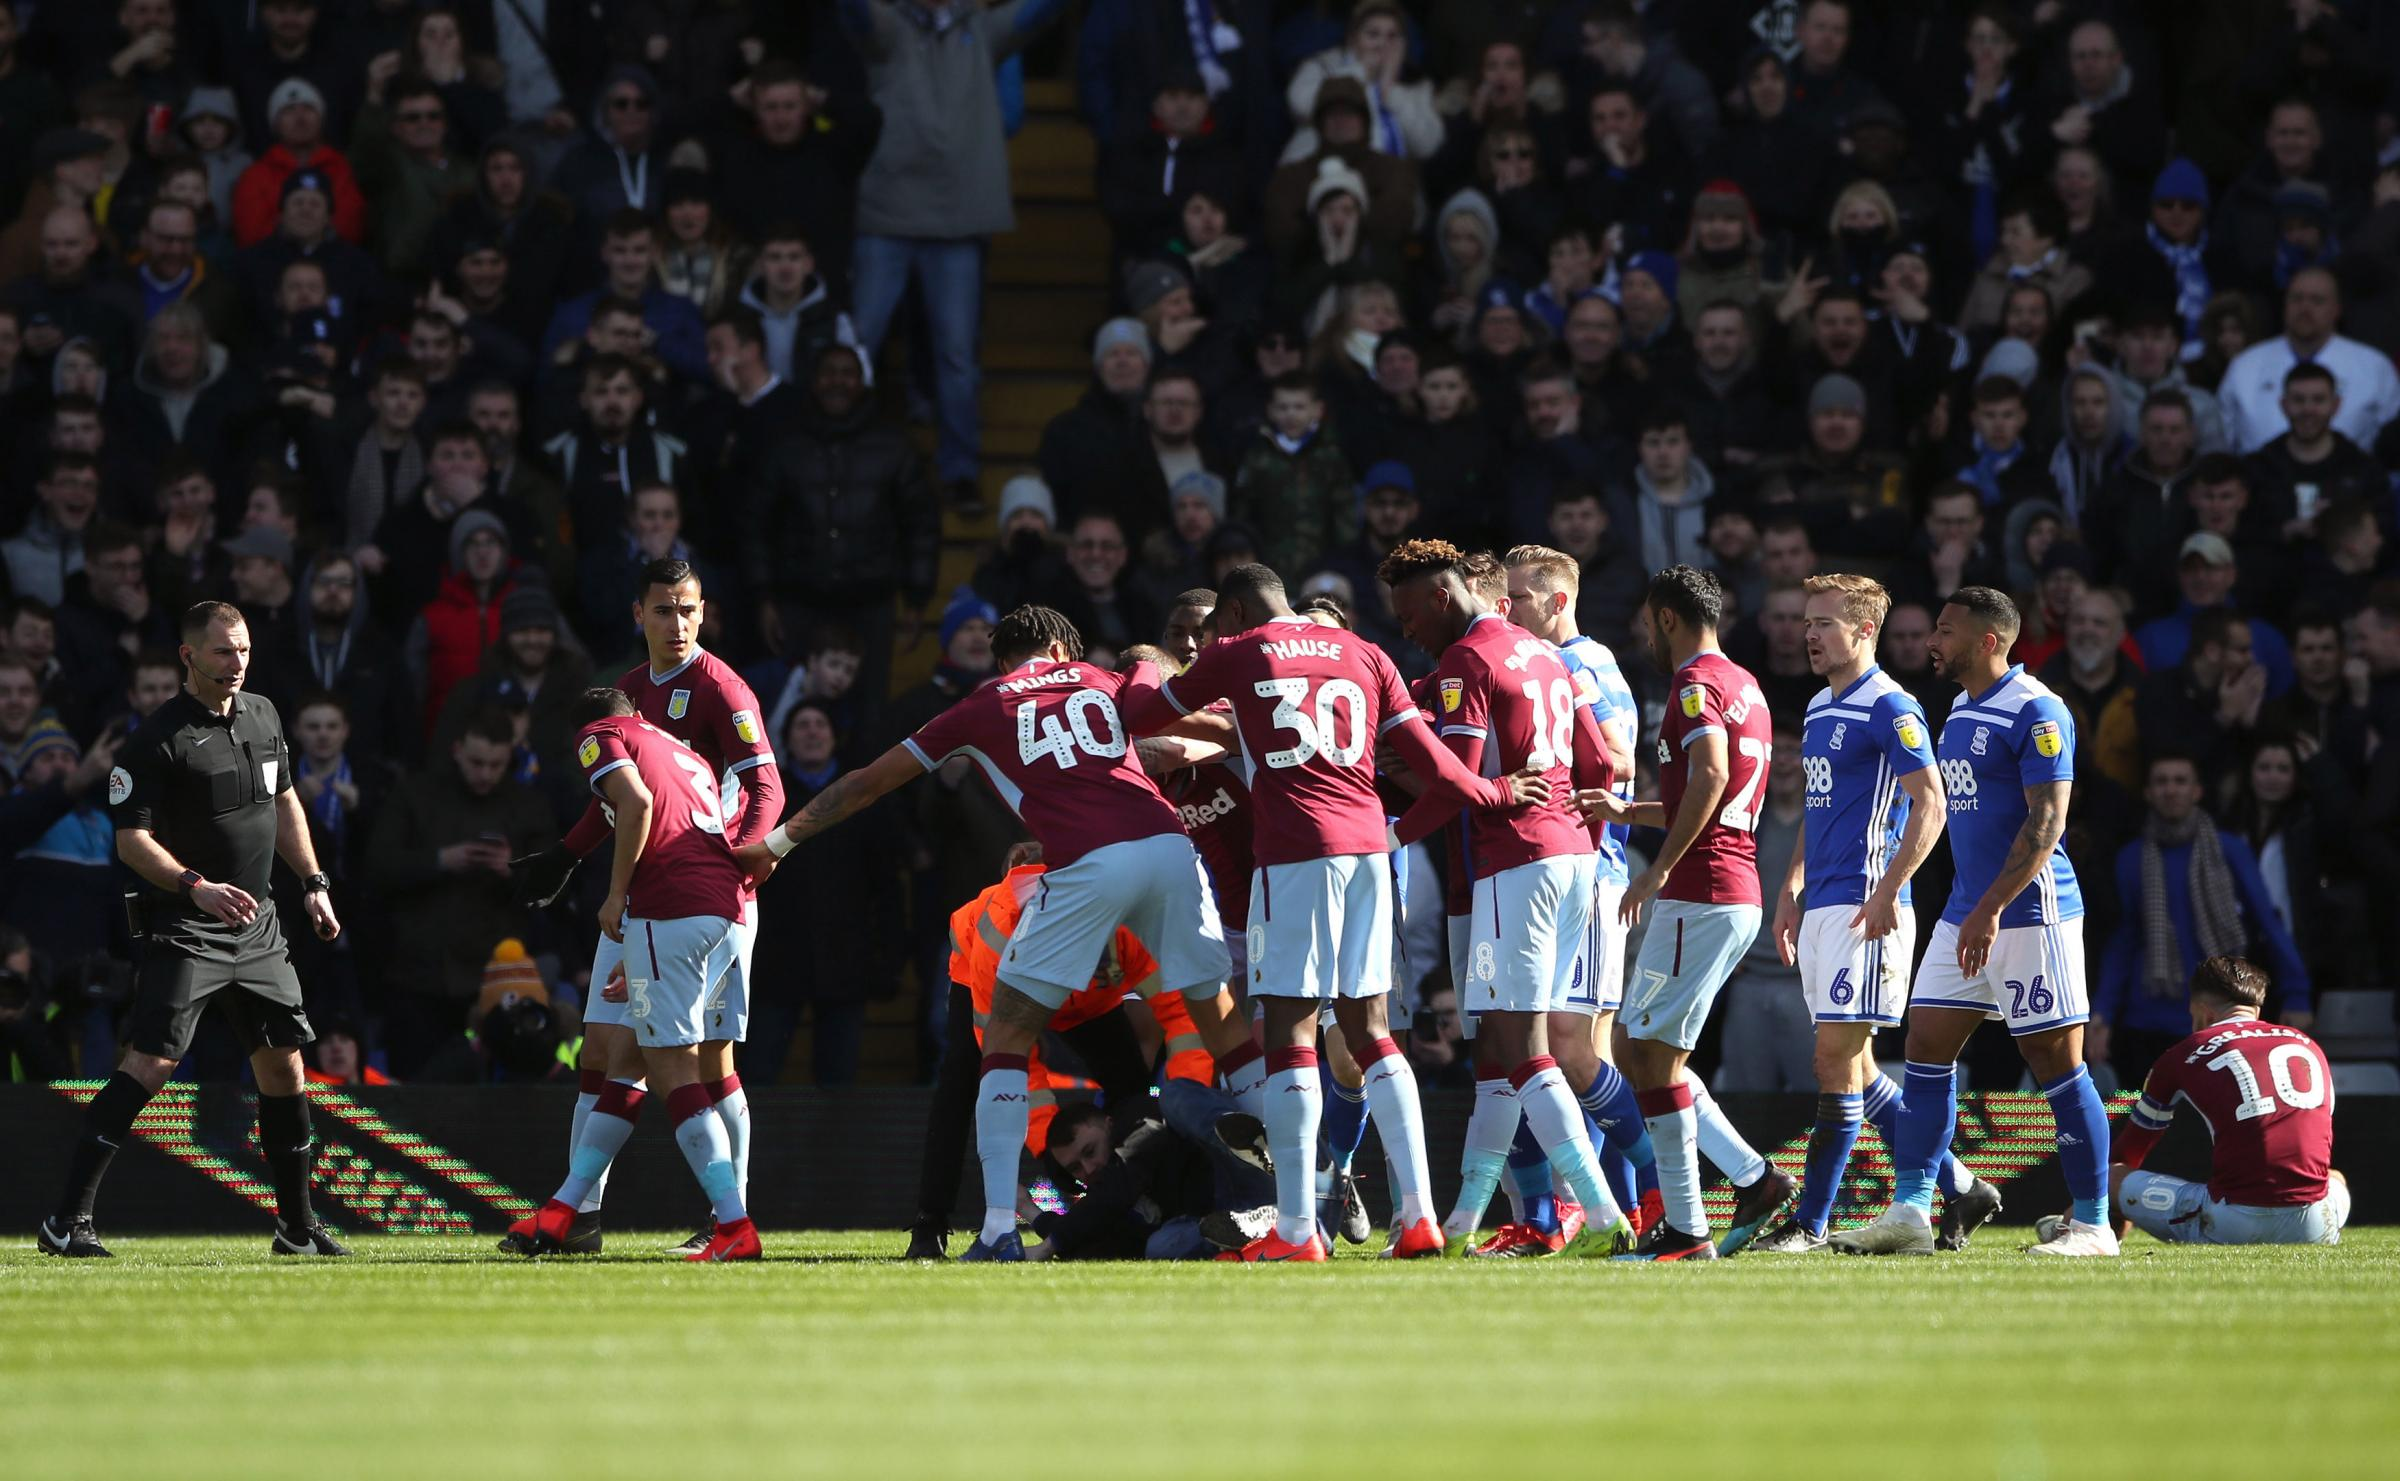 The incident happened during The game at St Andrew's. Picture: Nick Potts/PA Wire